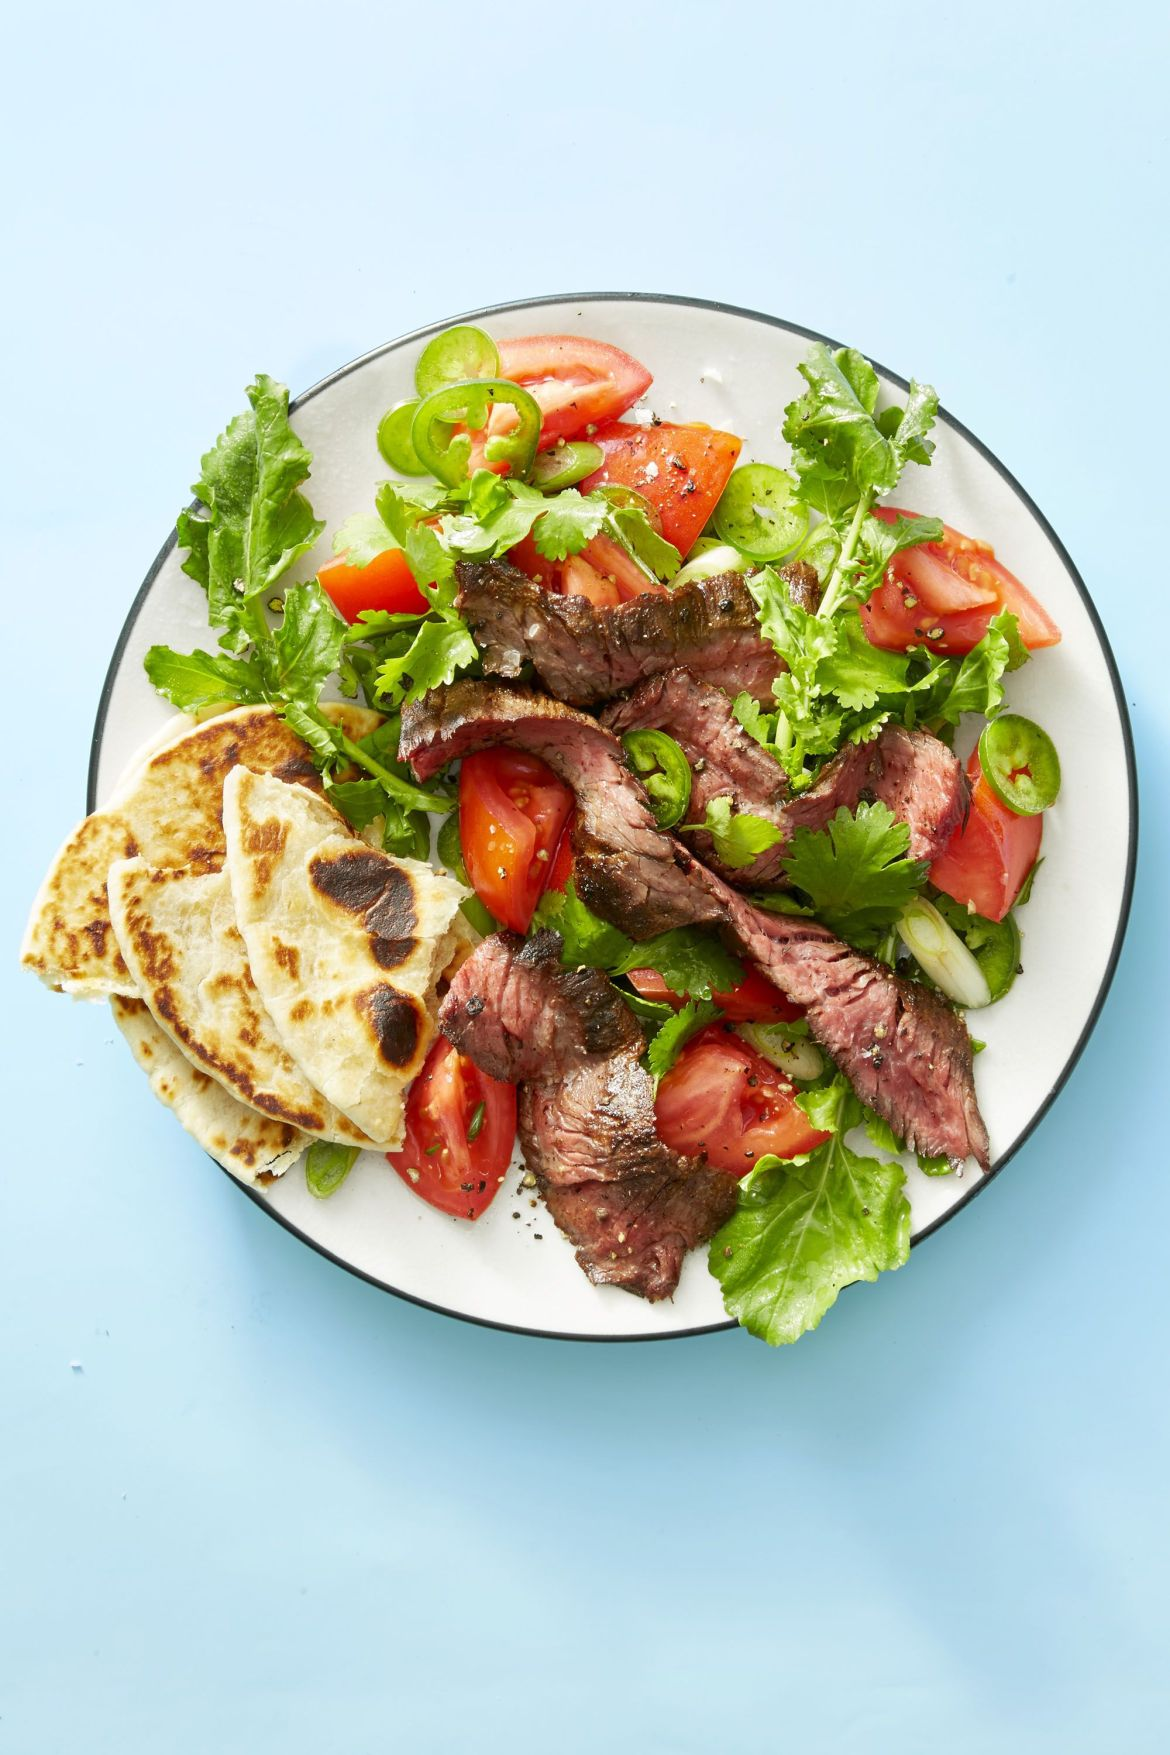 grilled steak tortilla salad ghk 0528 1524087142 - Healthy Things to Eat for Lunch -19 Healthy Lunch Ideas for You